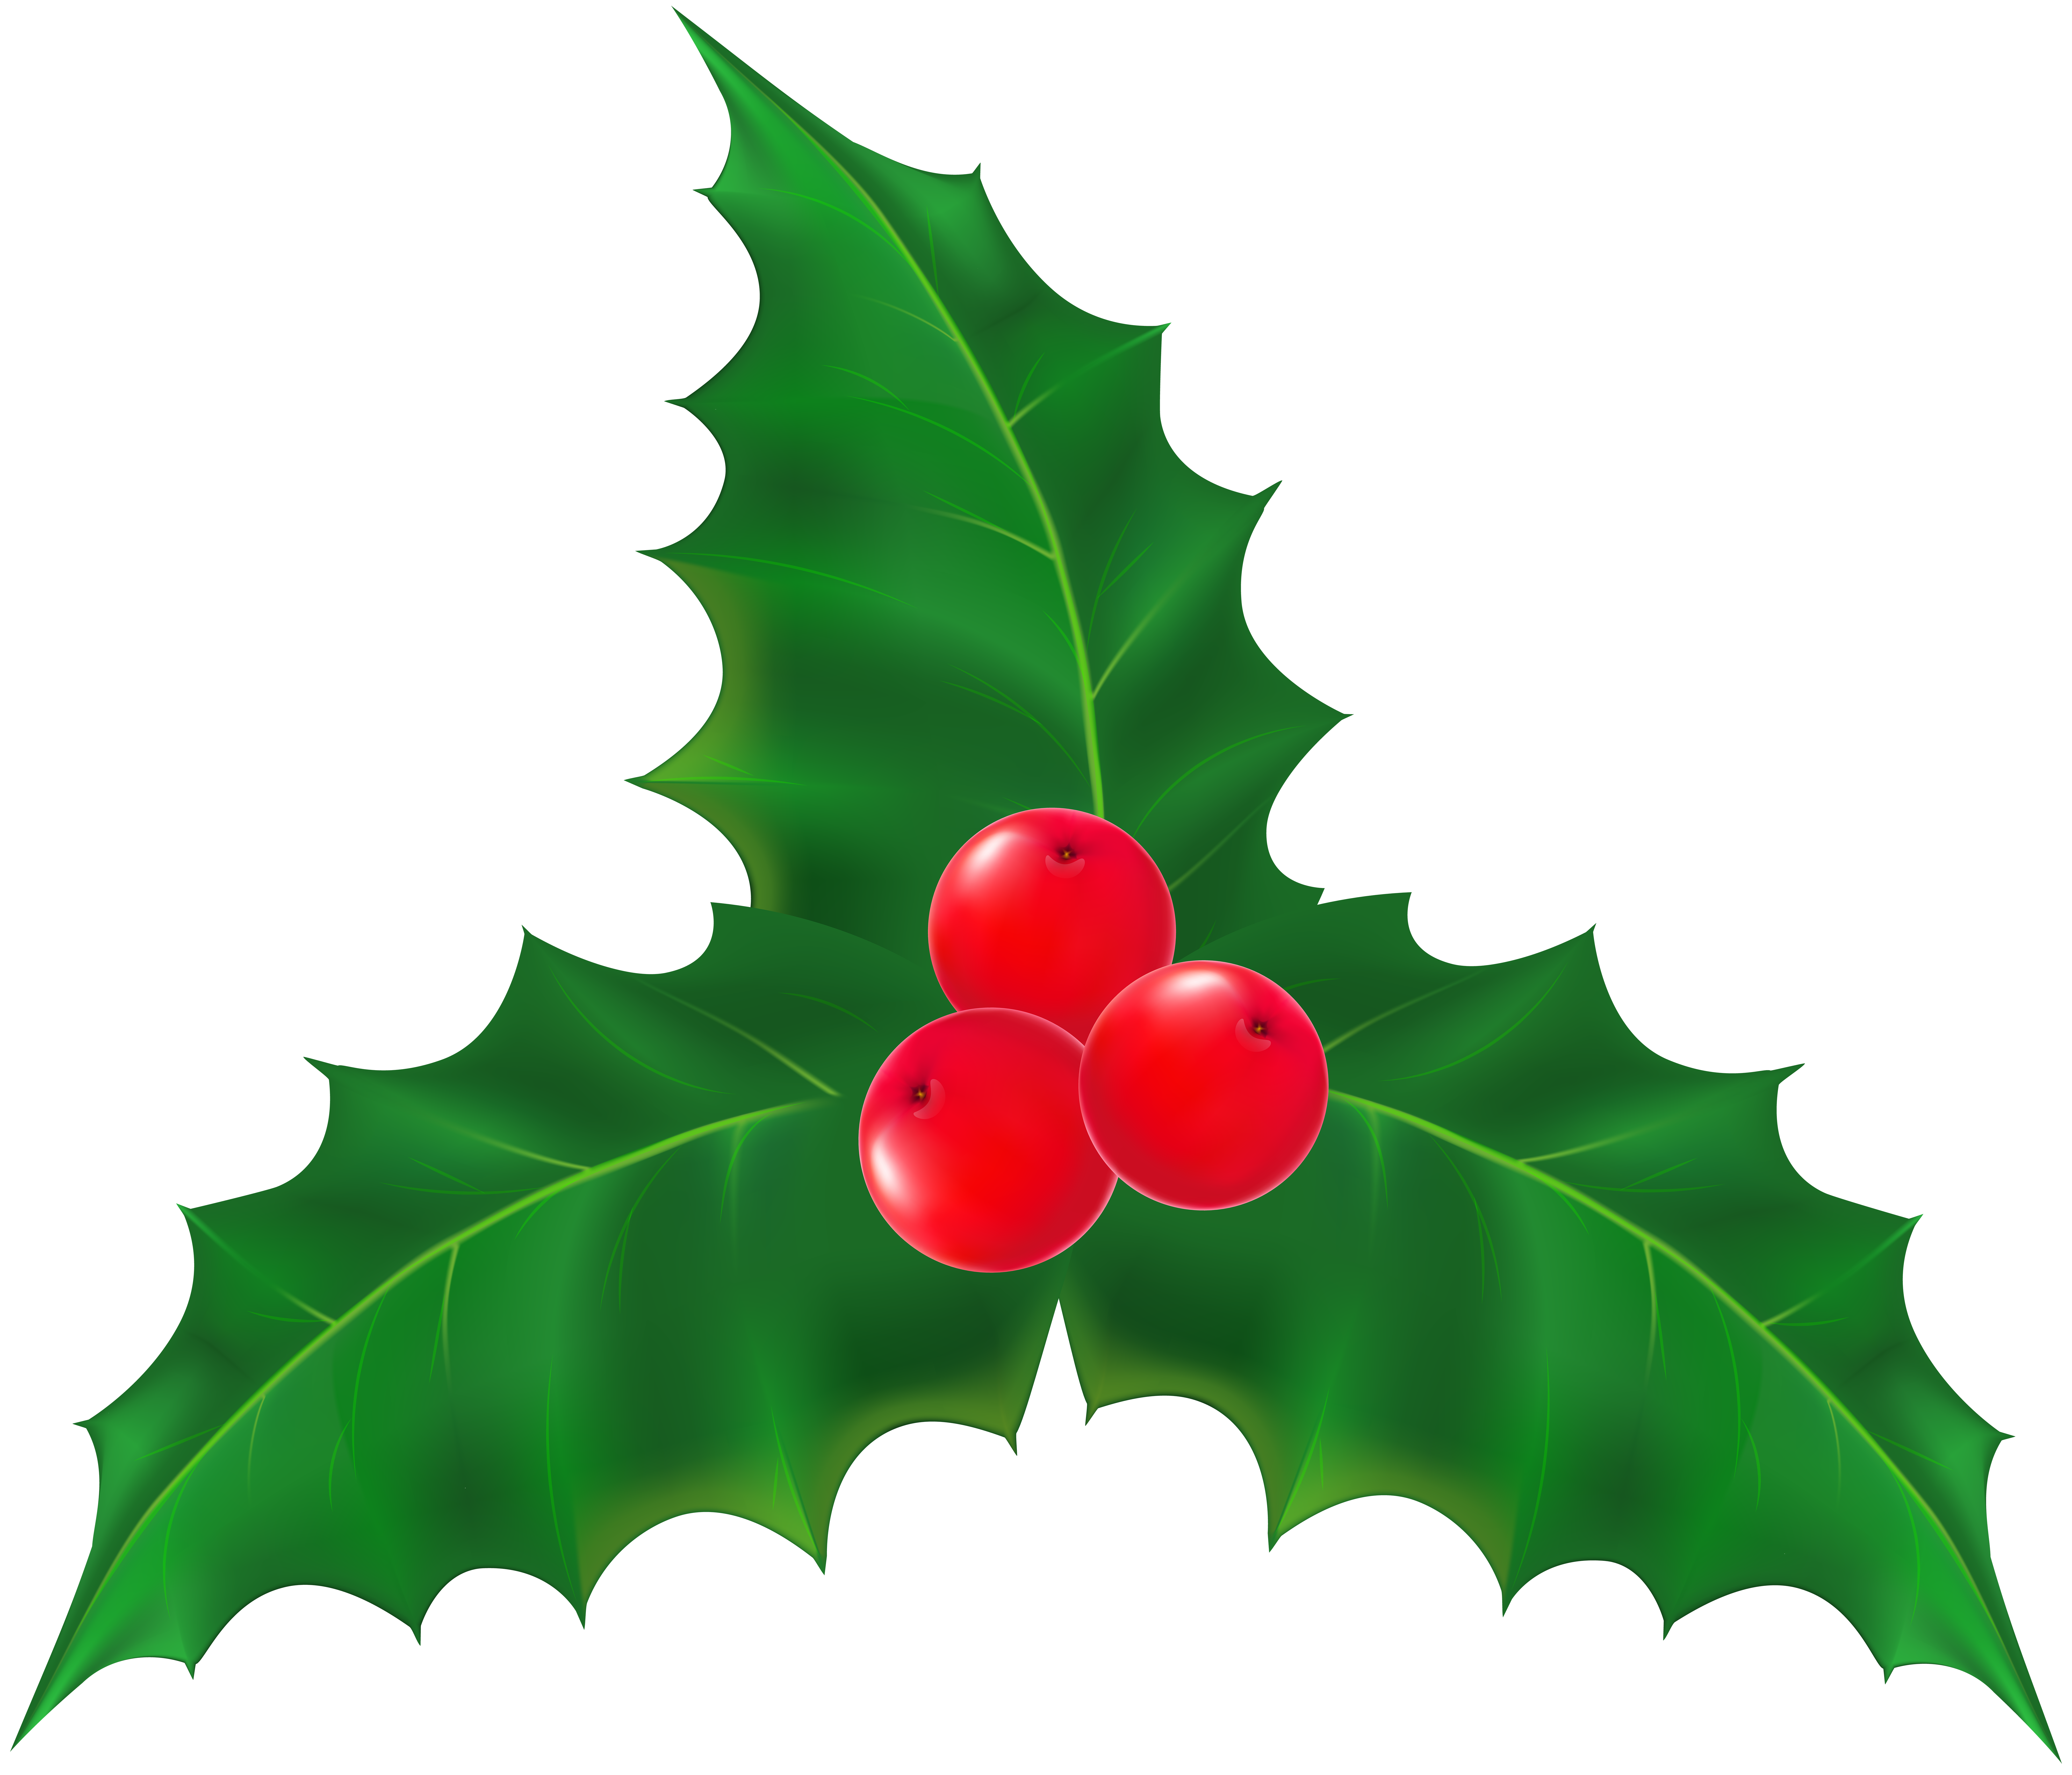 Holly tree clipart picture freeuse download Holly Leaf Clipart at GetDrawings.com | Free for personal use Holly ... picture freeuse download